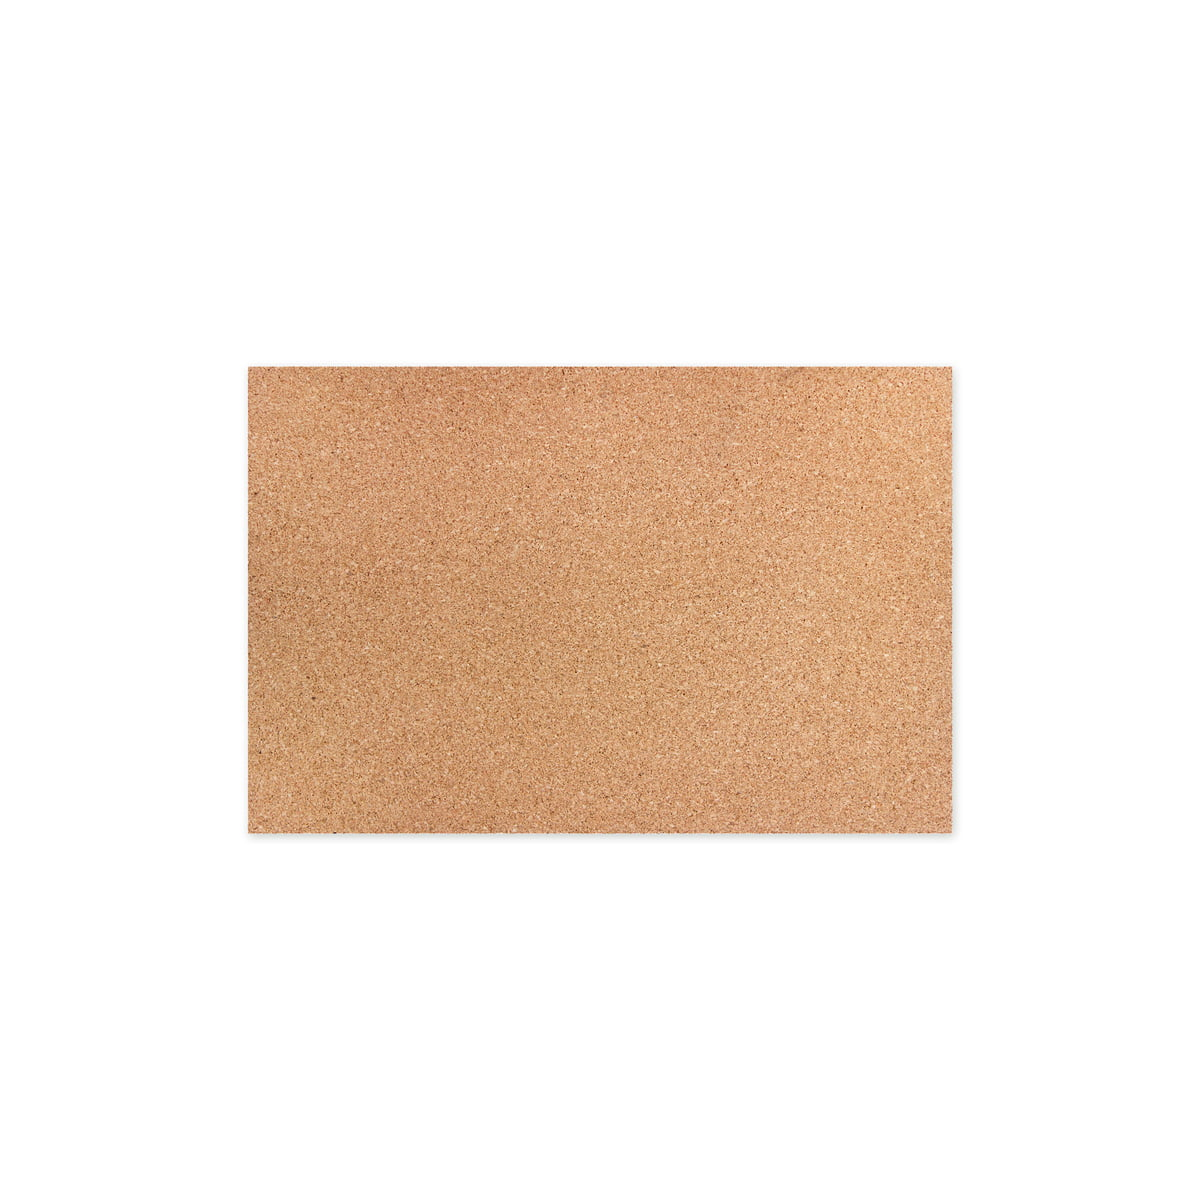 Big corkboard online from connox for Connox com